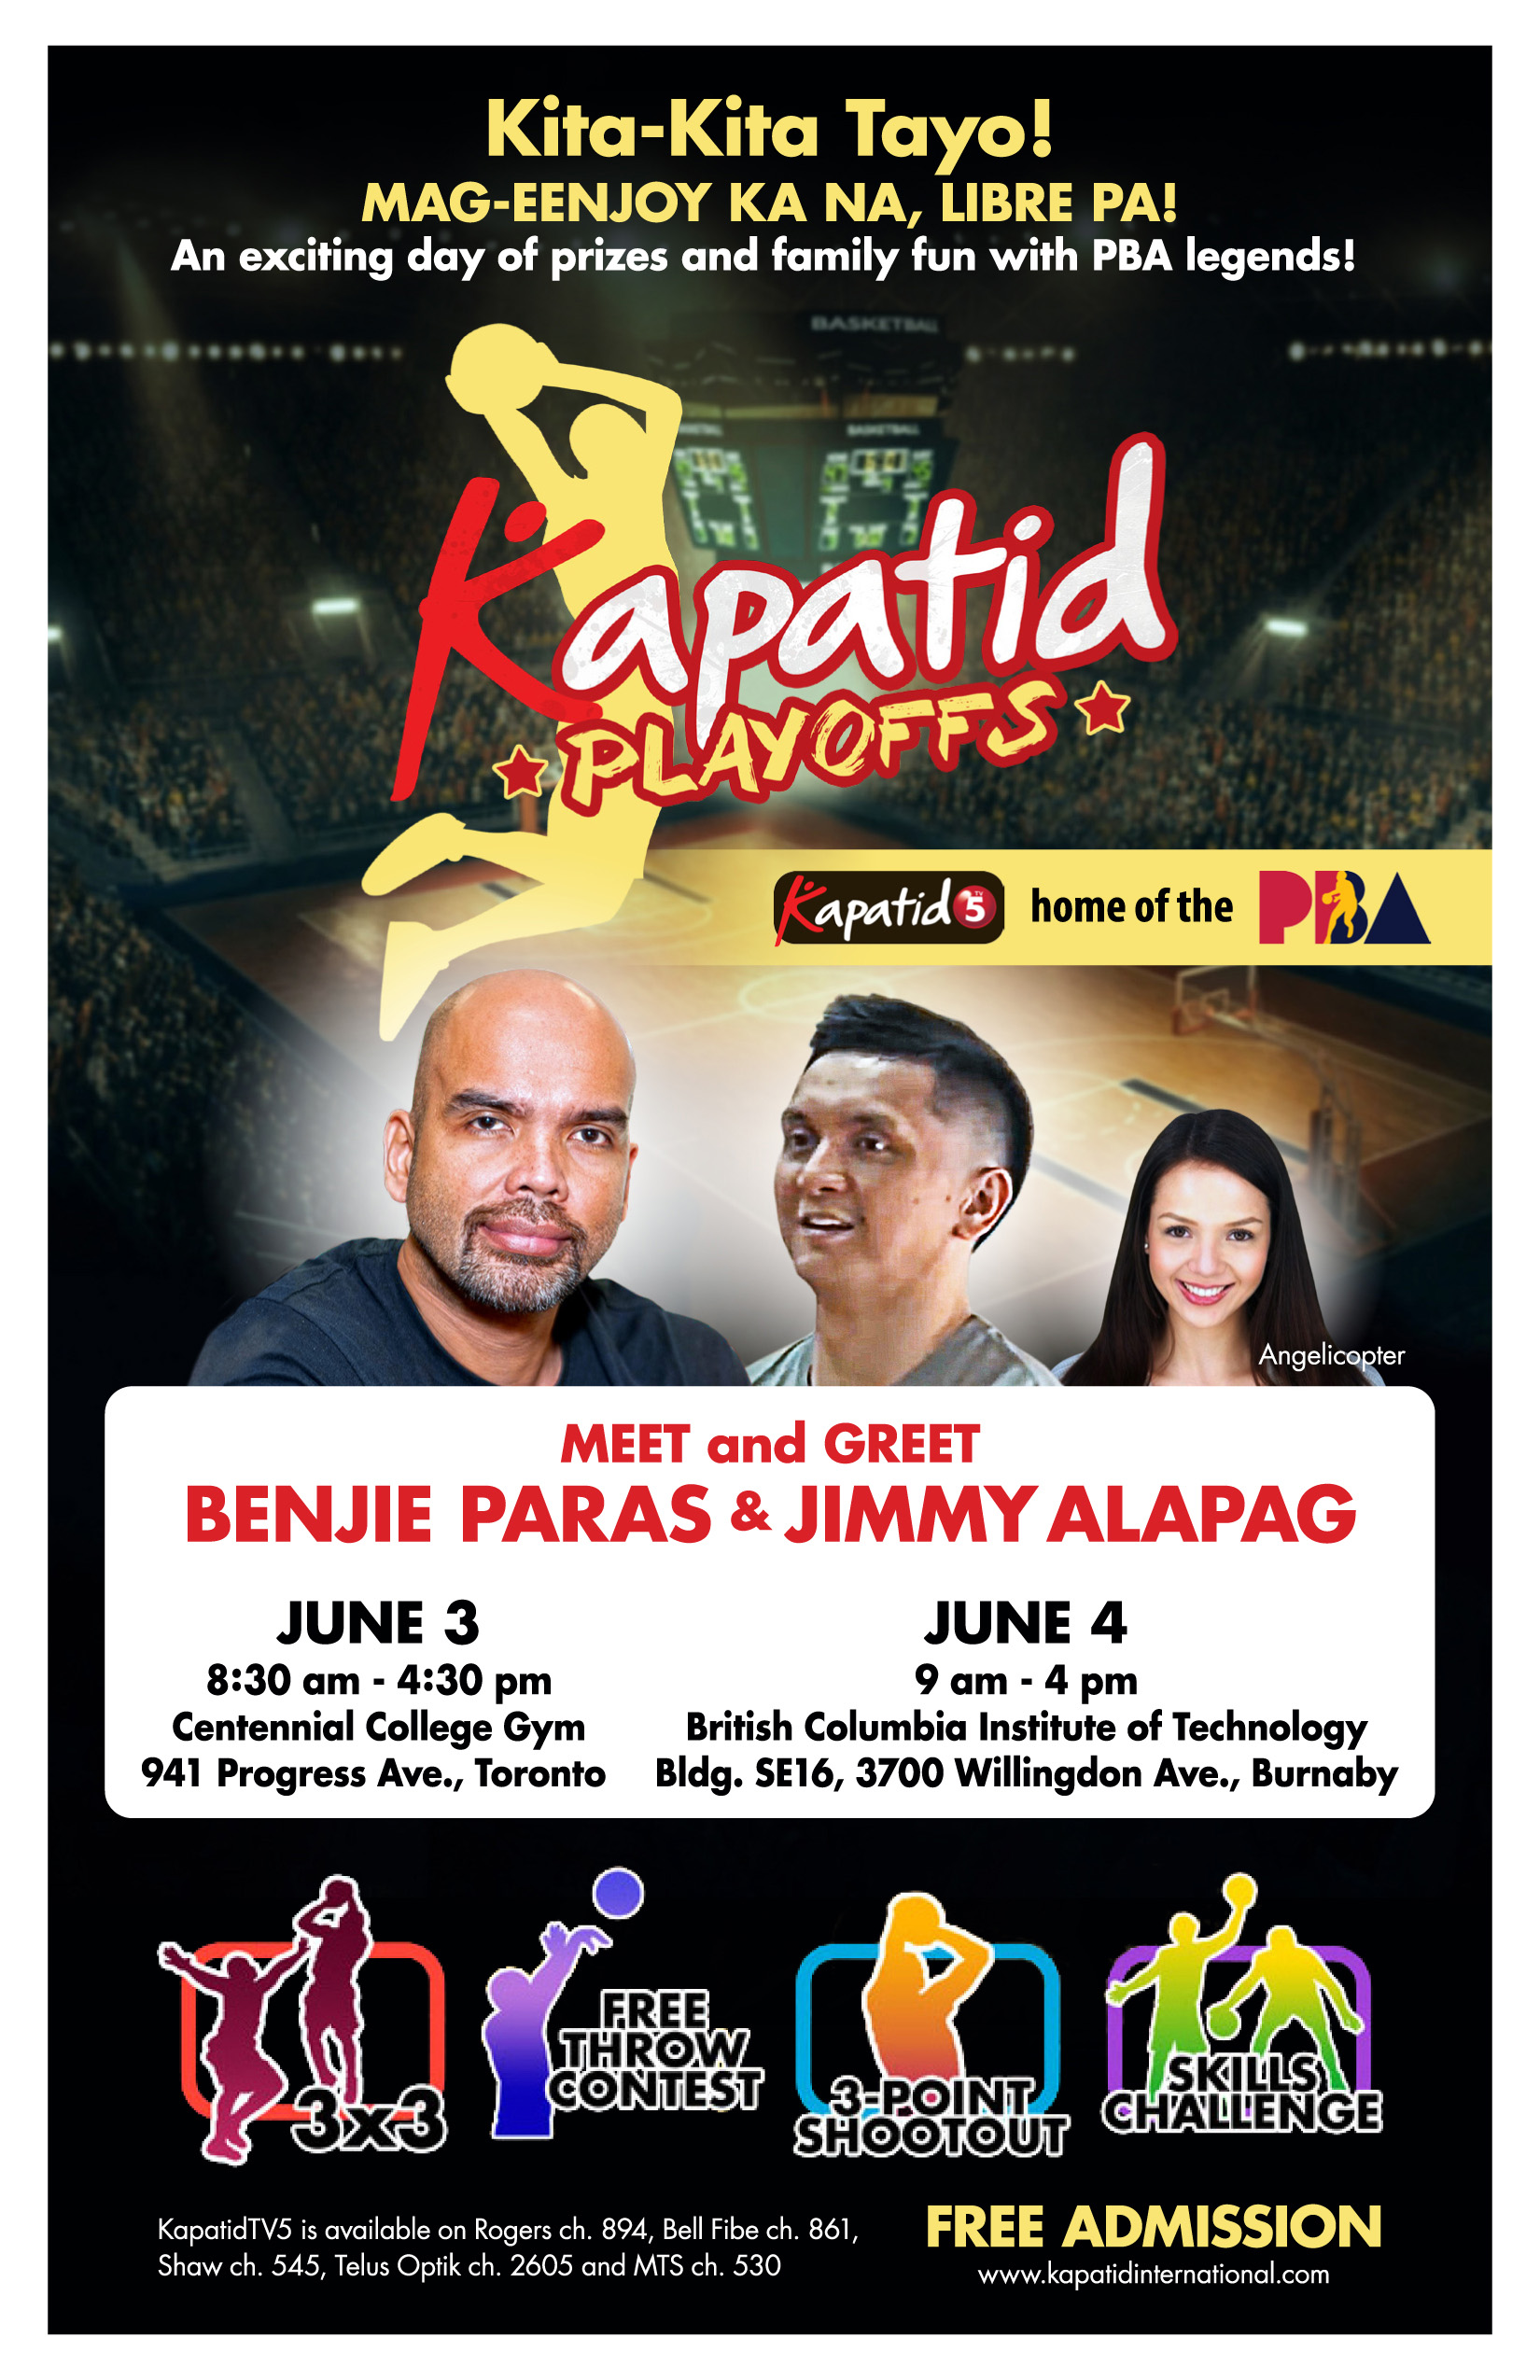 17-0021 TV5 Kapatid Playoffs Invitation Flyer v3